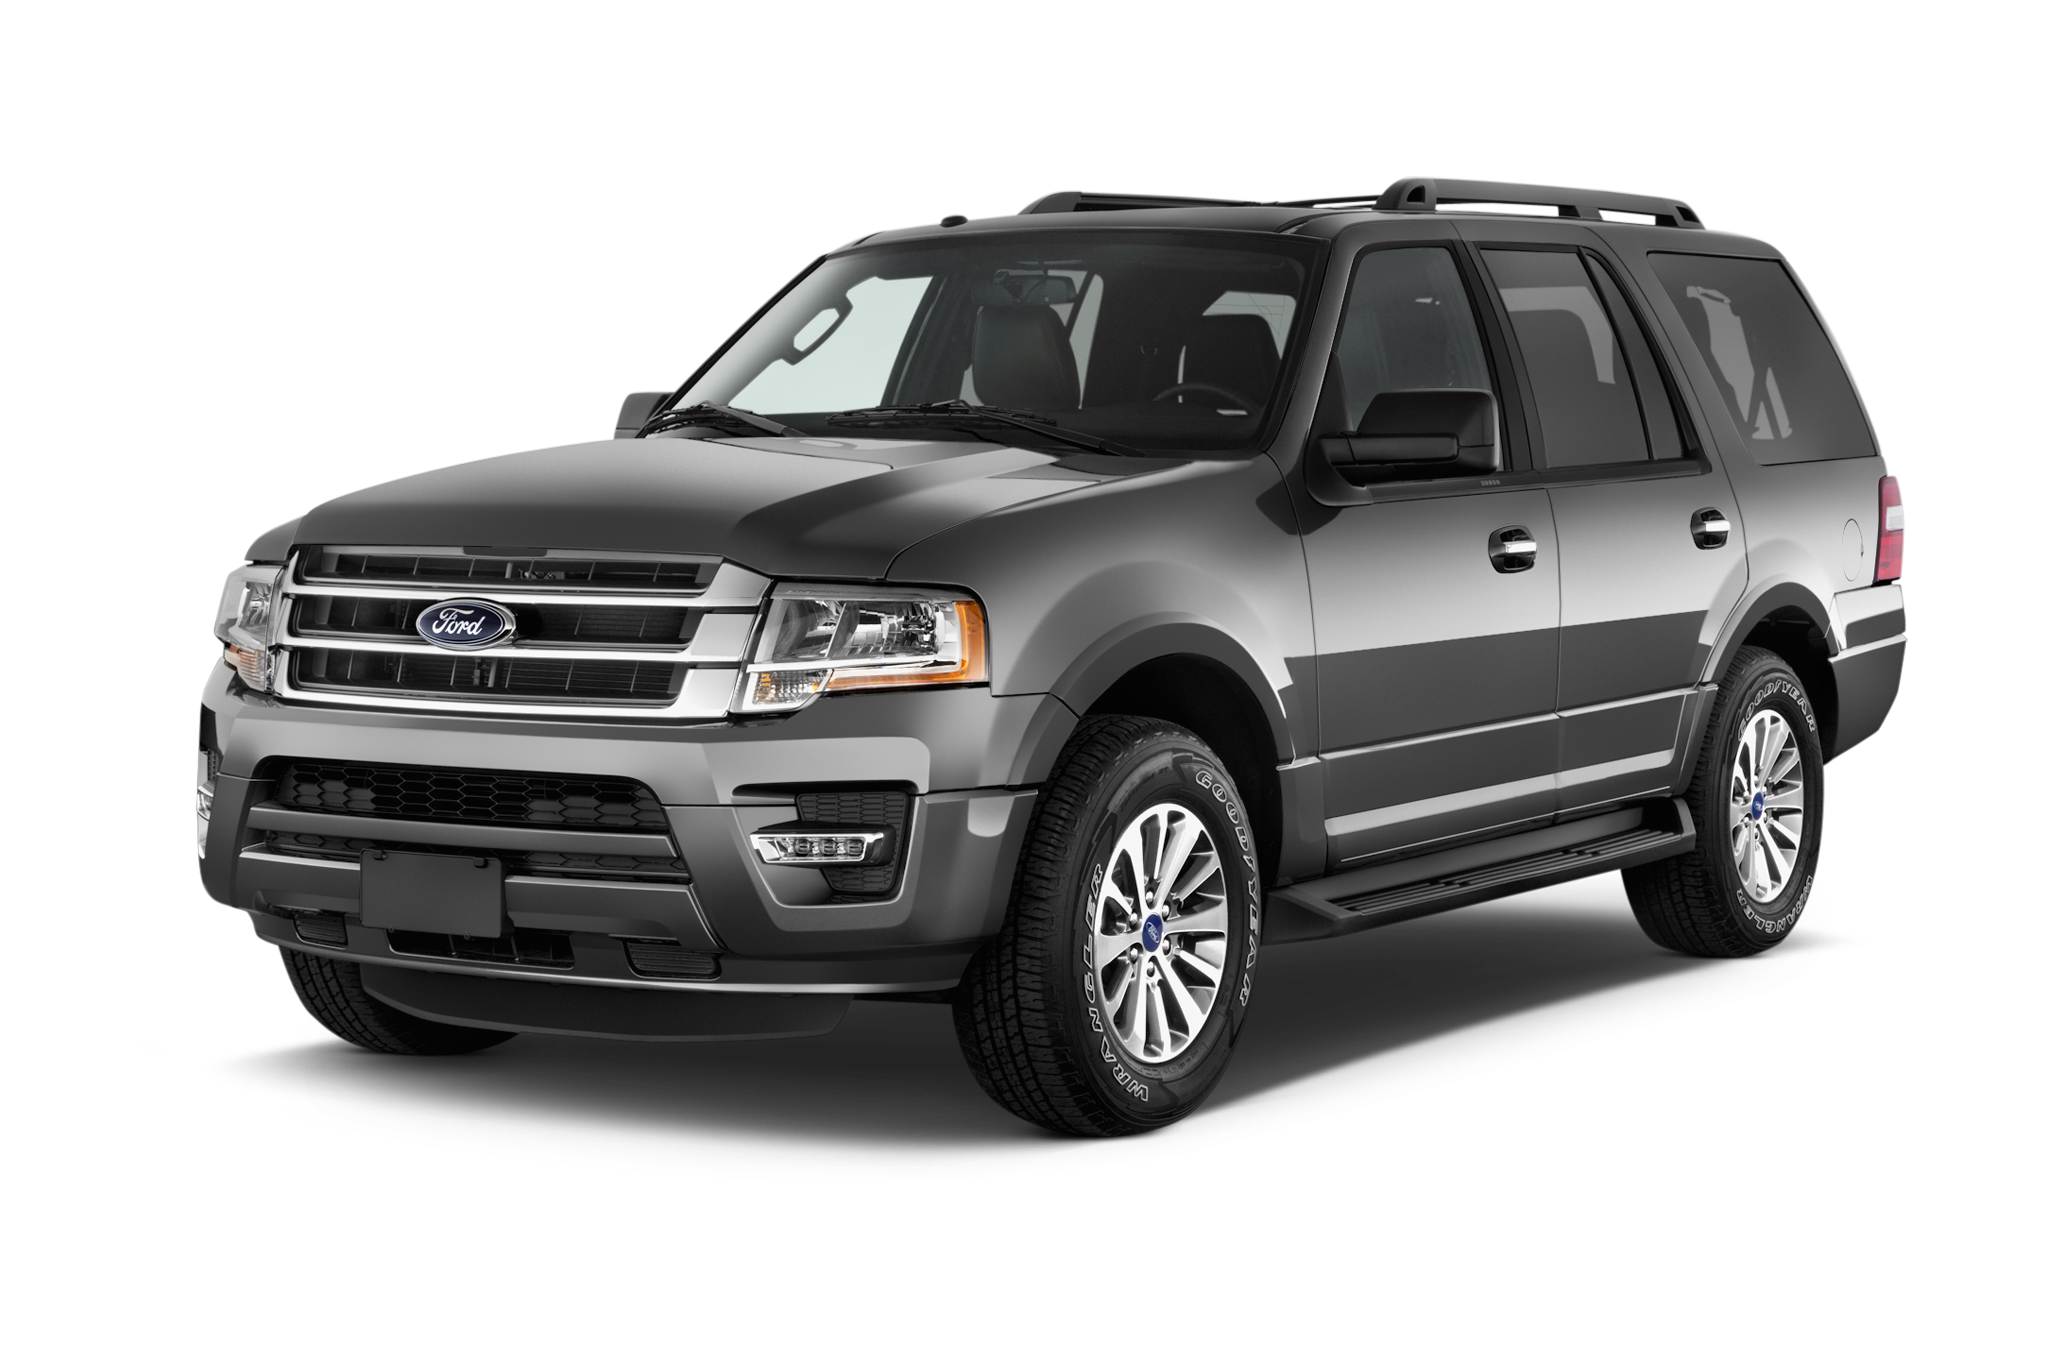 2015 ford expedition updated with ecoboost v 6 engine. Black Bedroom Furniture Sets. Home Design Ideas